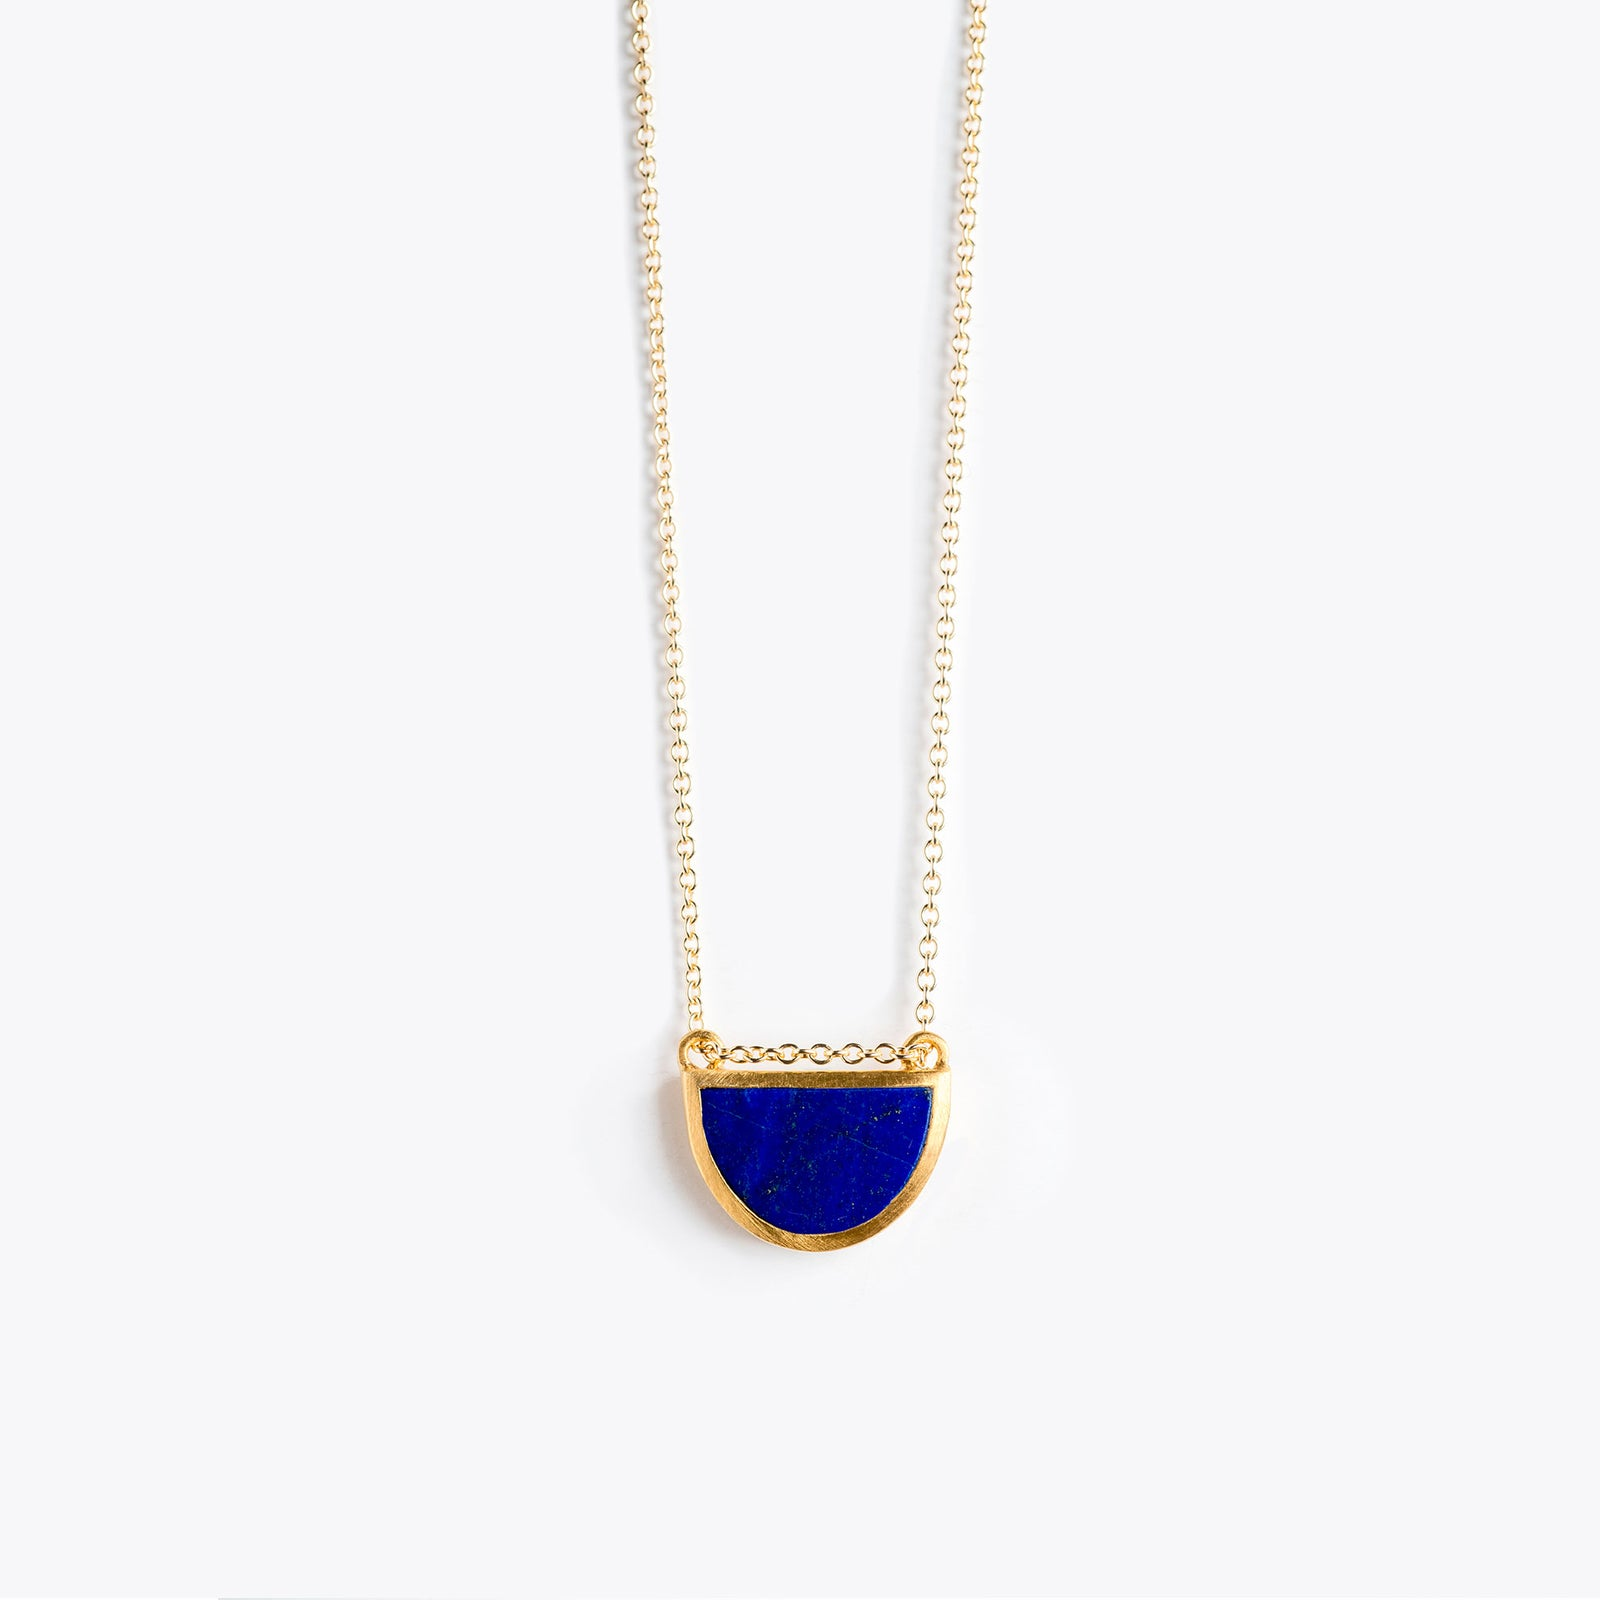 Wanderlust Life Ethically Handmade jewellery made in the UK. Minimalist gold and fine cord jewellery. sunburst fine gold chain necklace, lapis lazuli